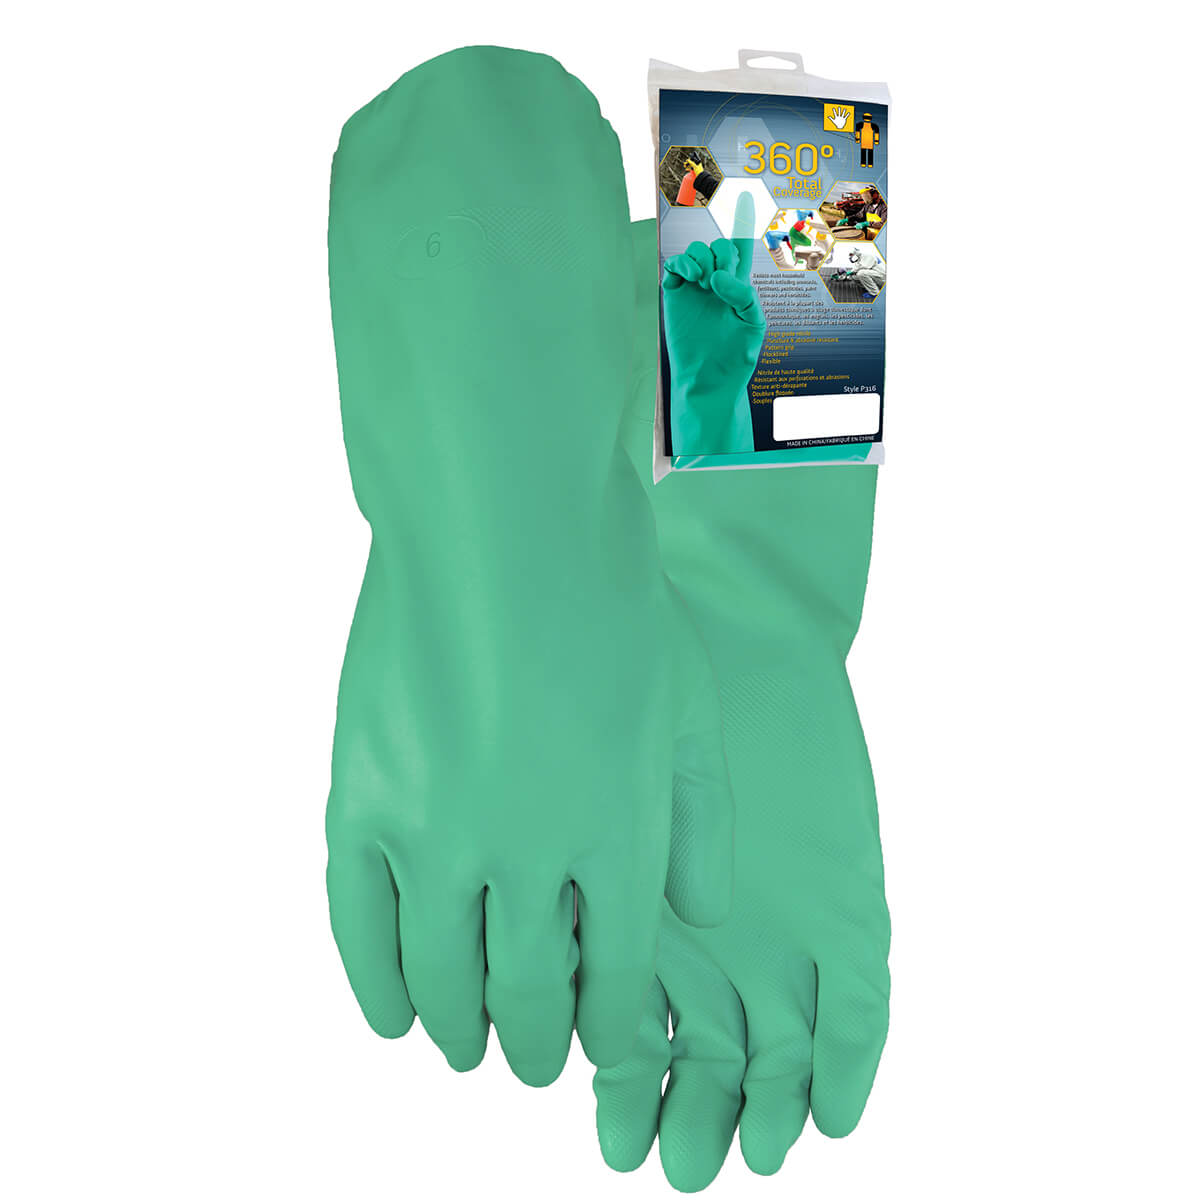 360° Total Coverage Gloves